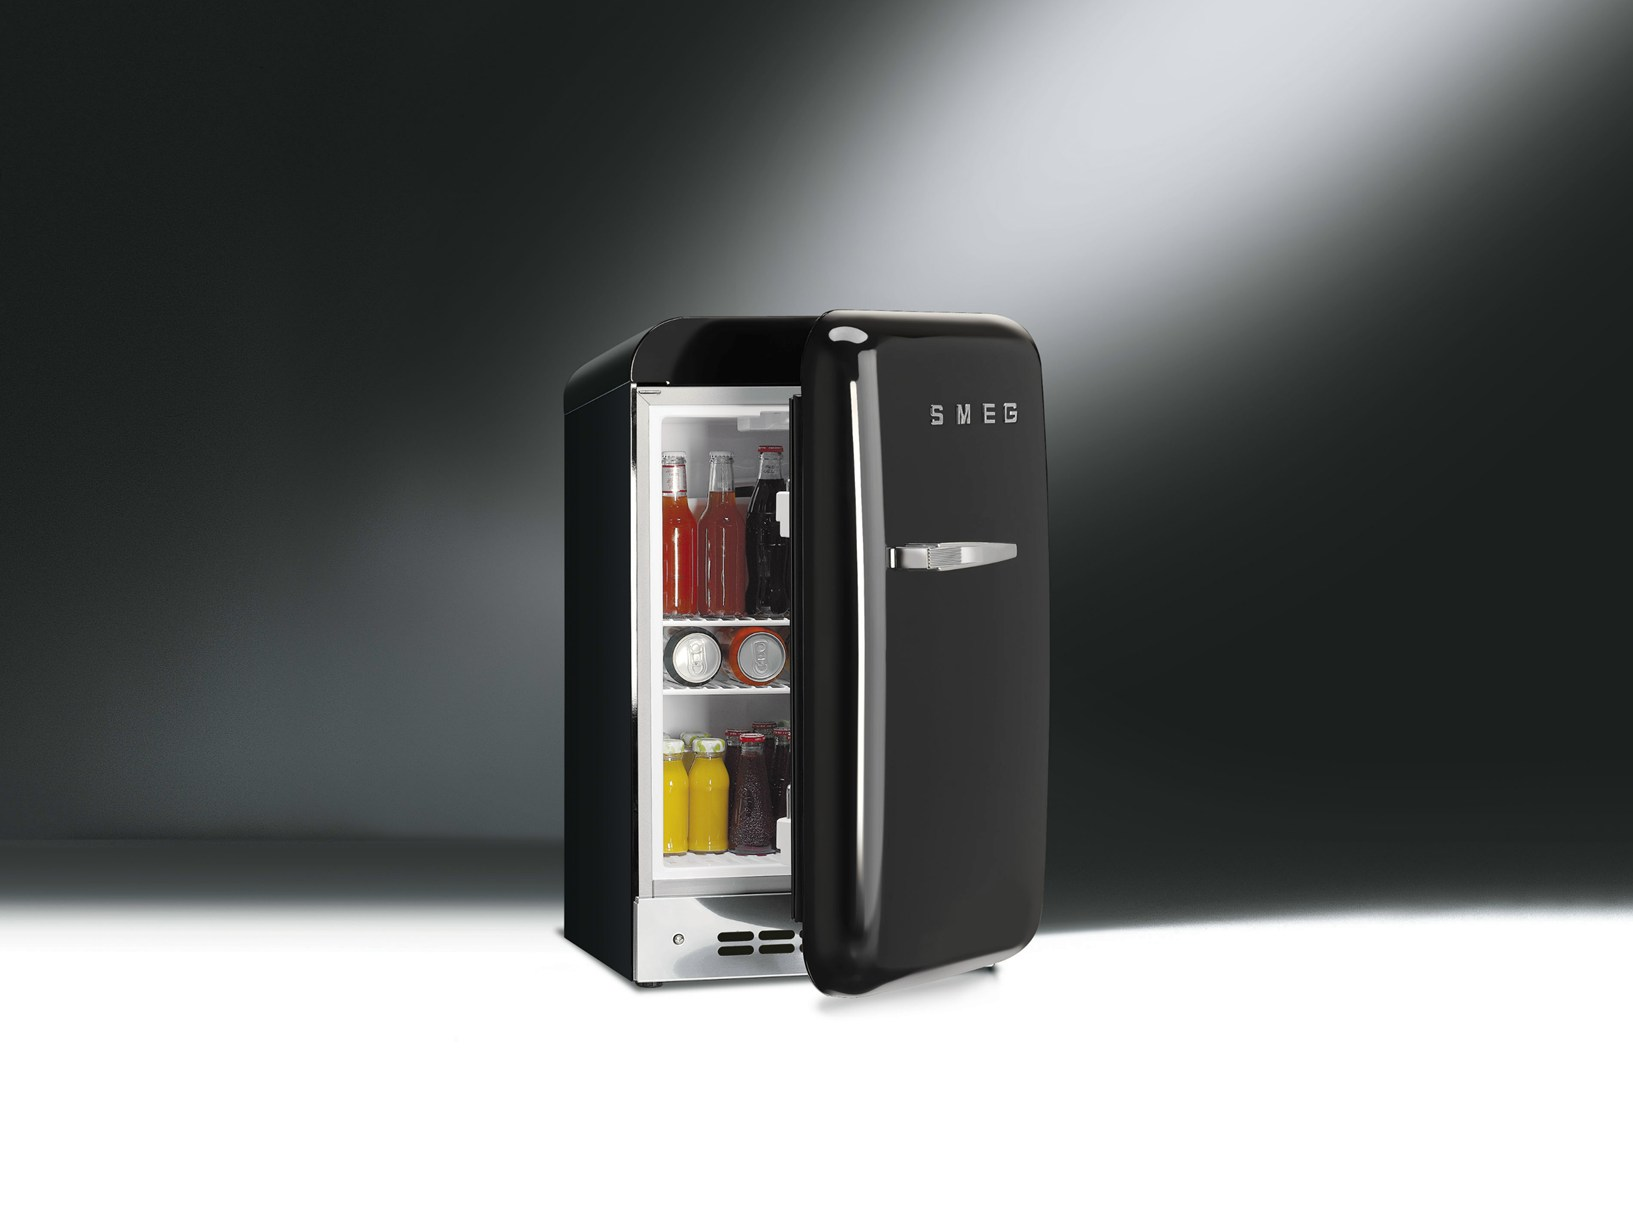 Smeg presenta il nuovo mini frigo fab5 for Mini frigo design